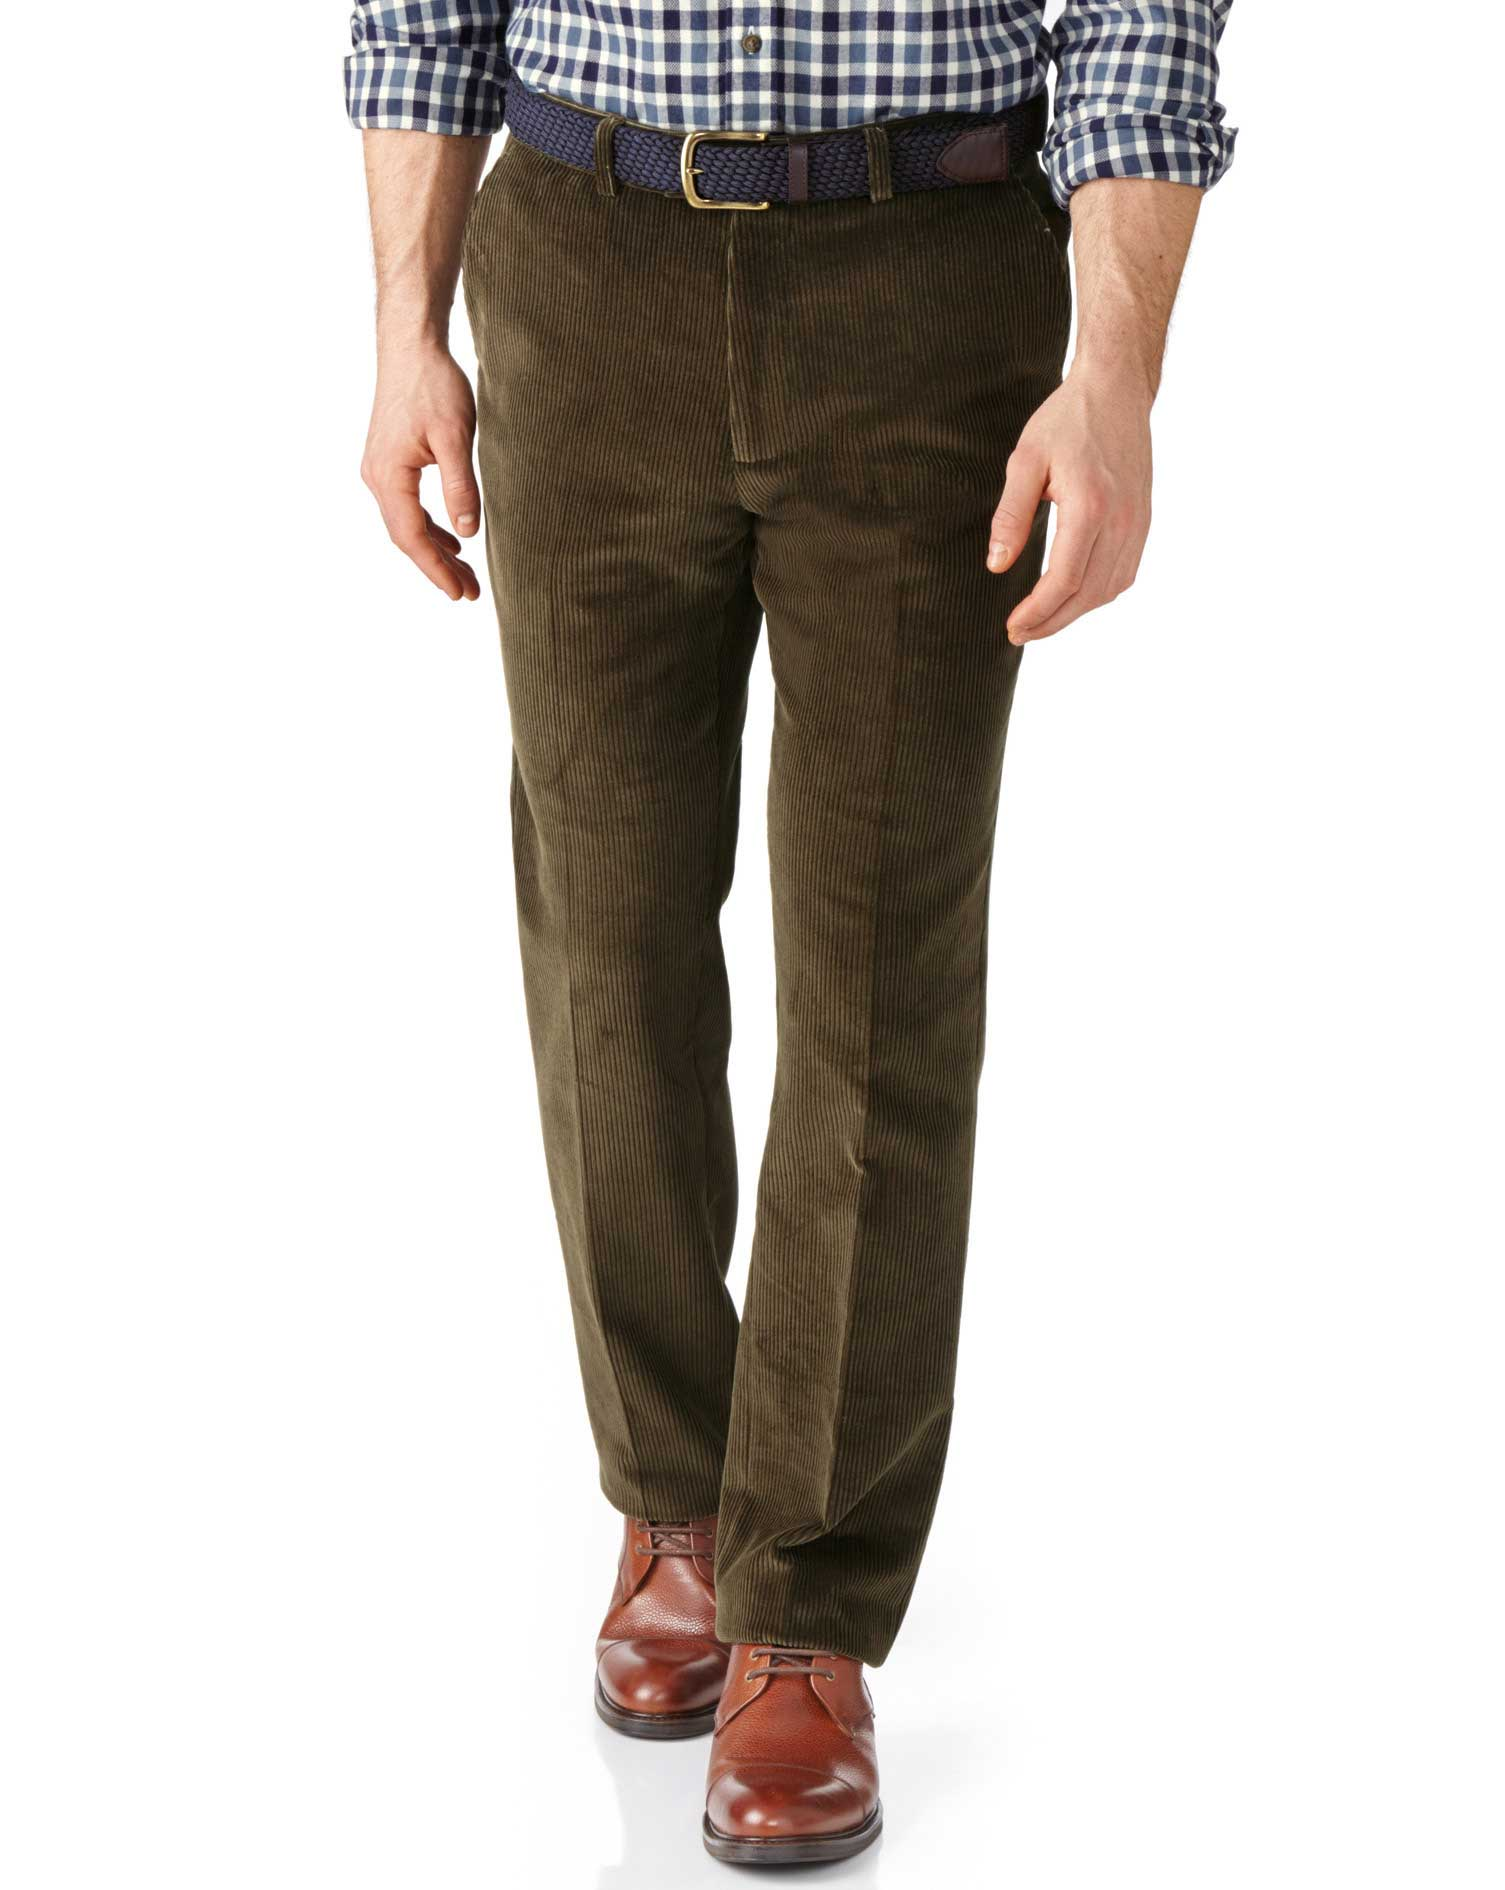 Olive Slim Fit Jumbo Cord Trousers Size W38 L30 by Charles Tyrwhitt